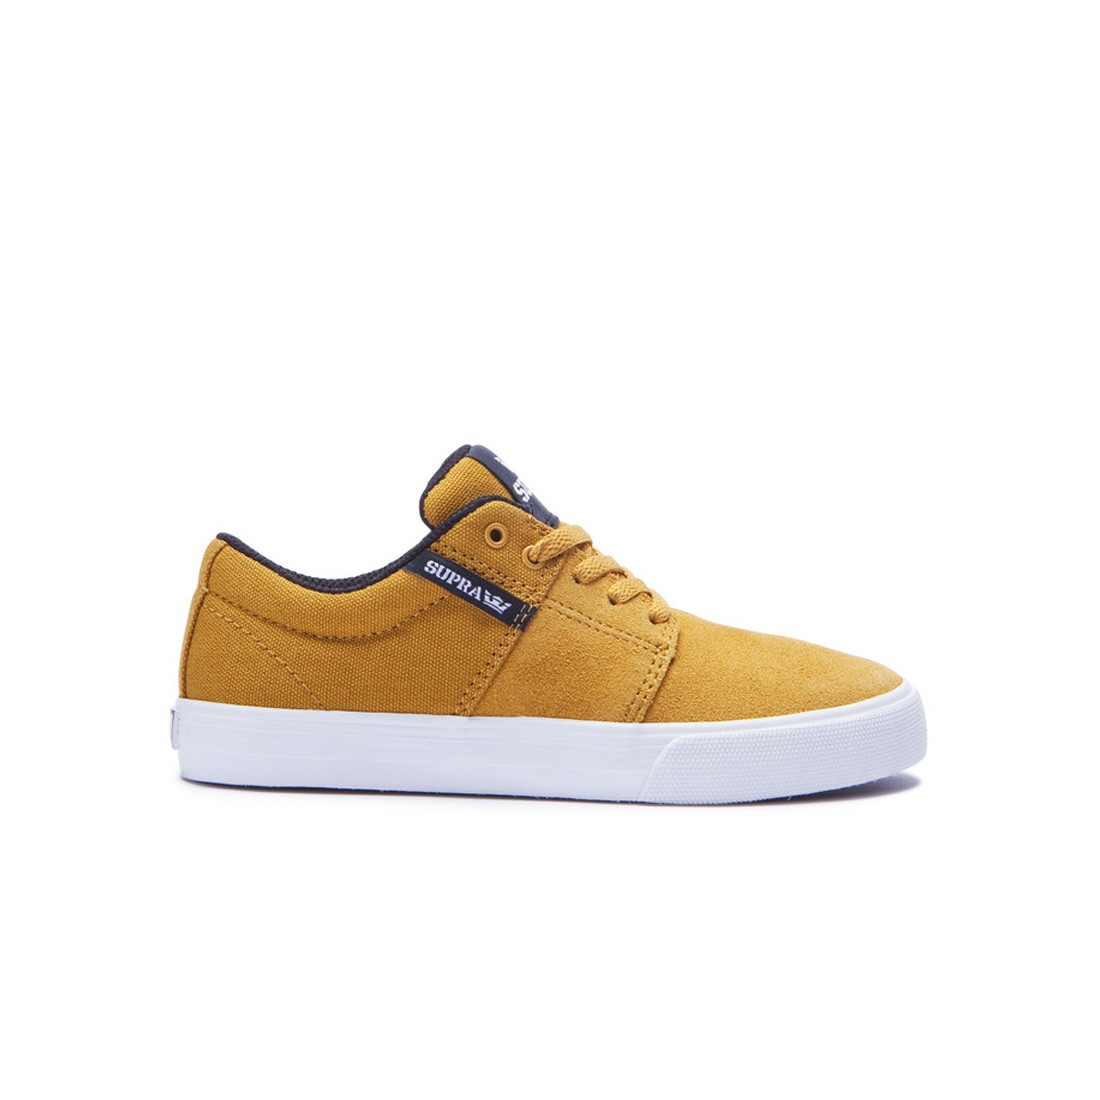 STACKS VULC amber gold white